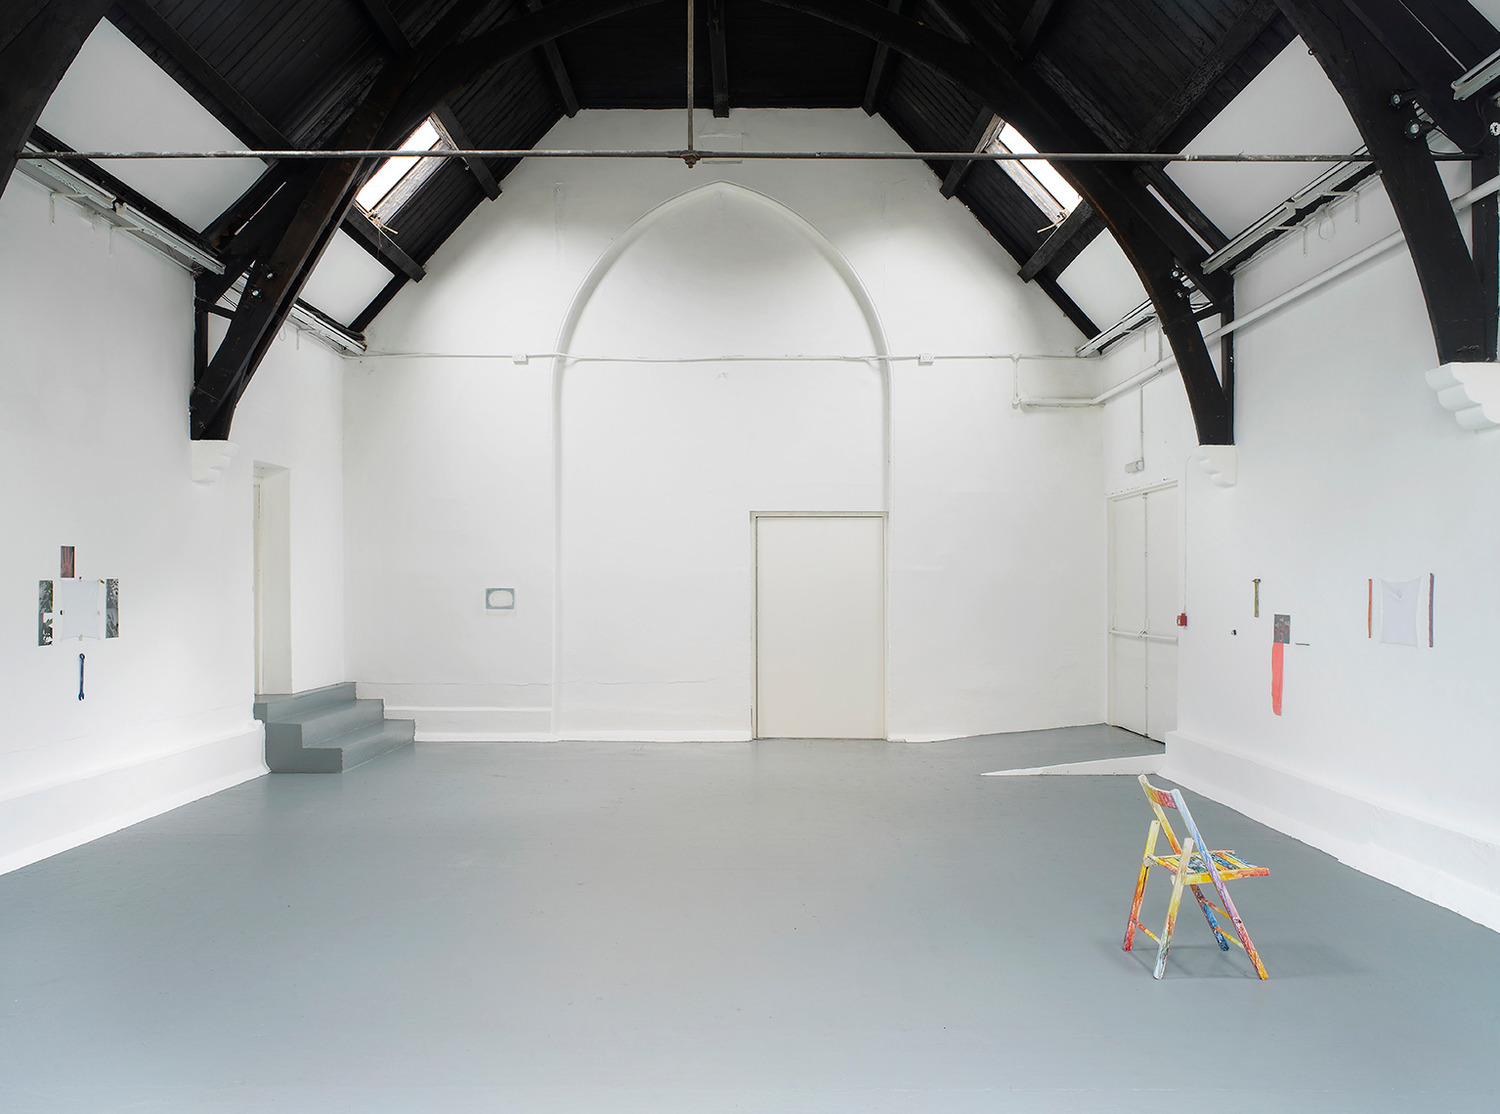 Installation view, 'Currents', Studio Voltaire, London, 2011